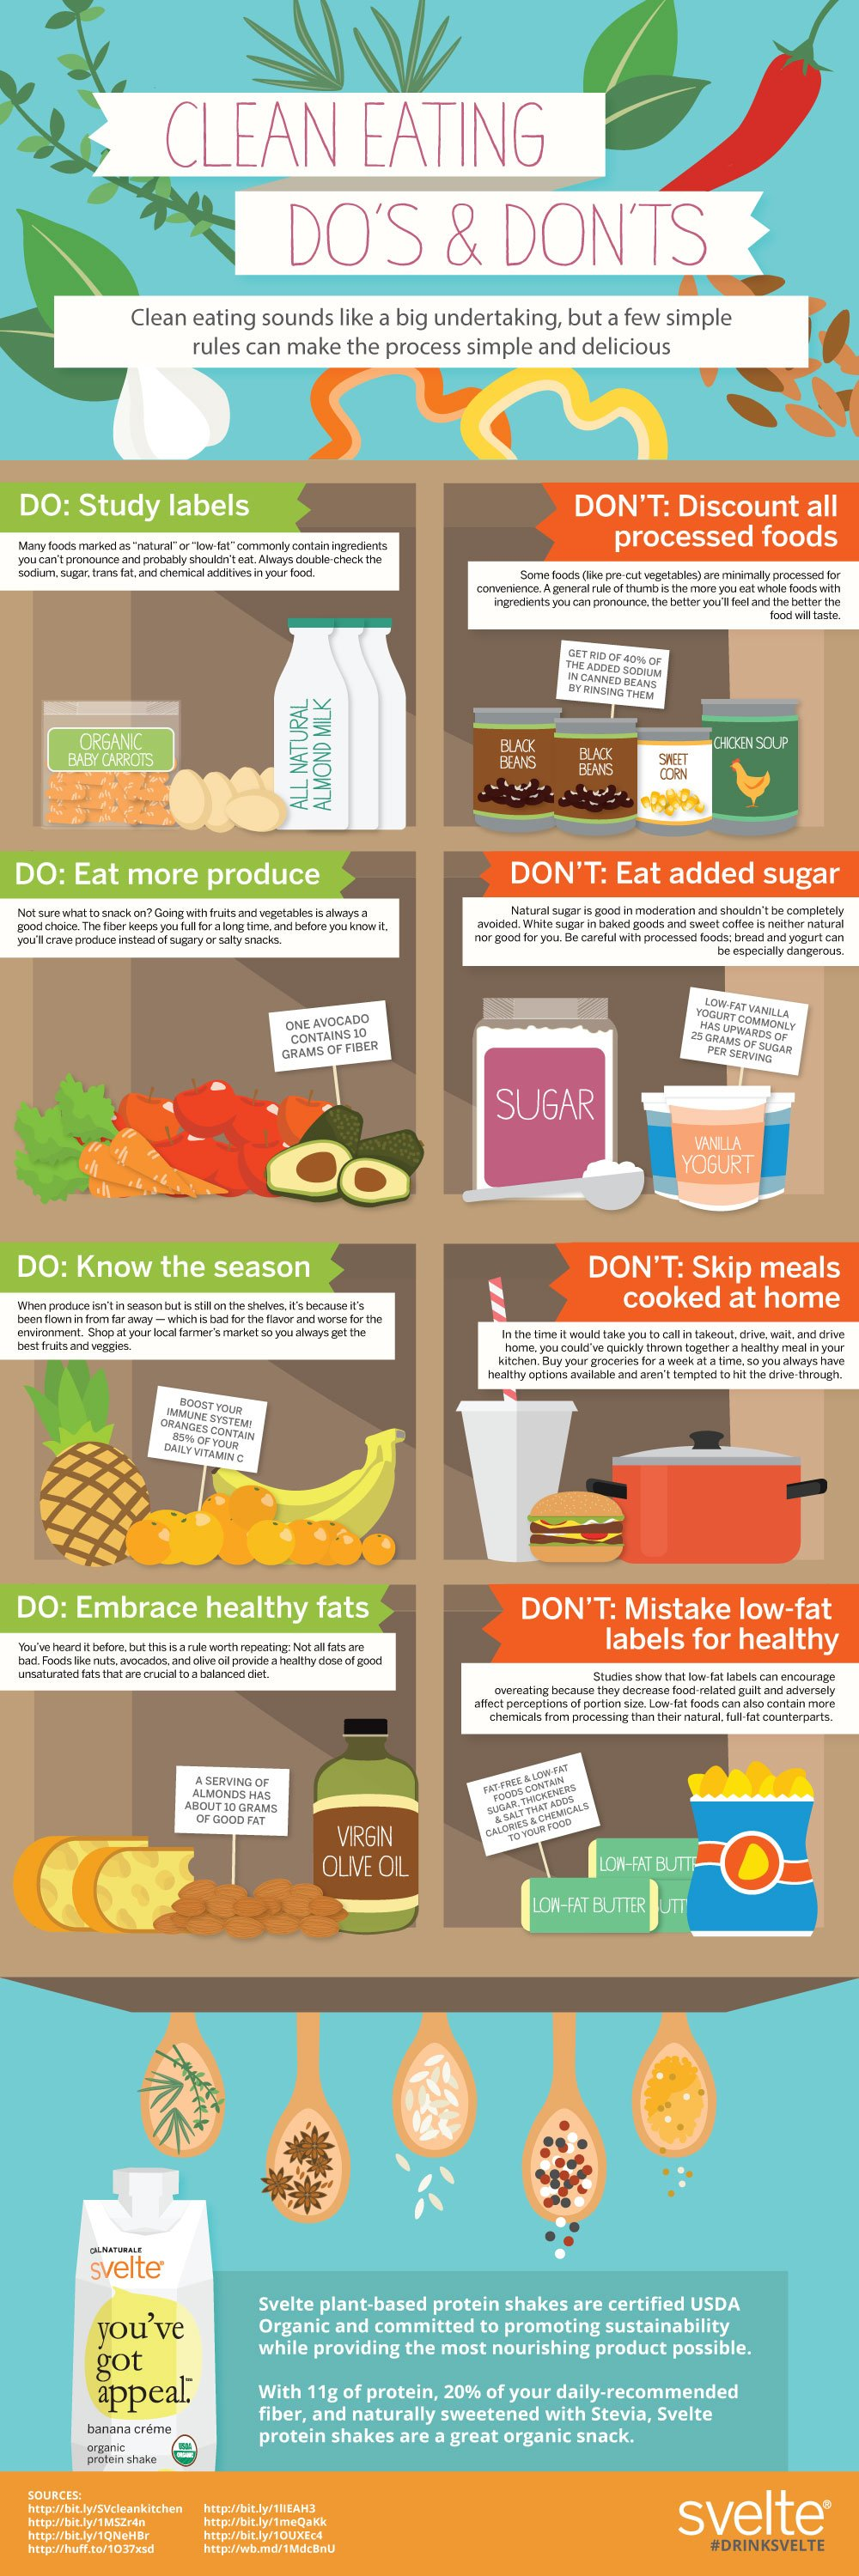 Clean Eating Do's and Don'ts